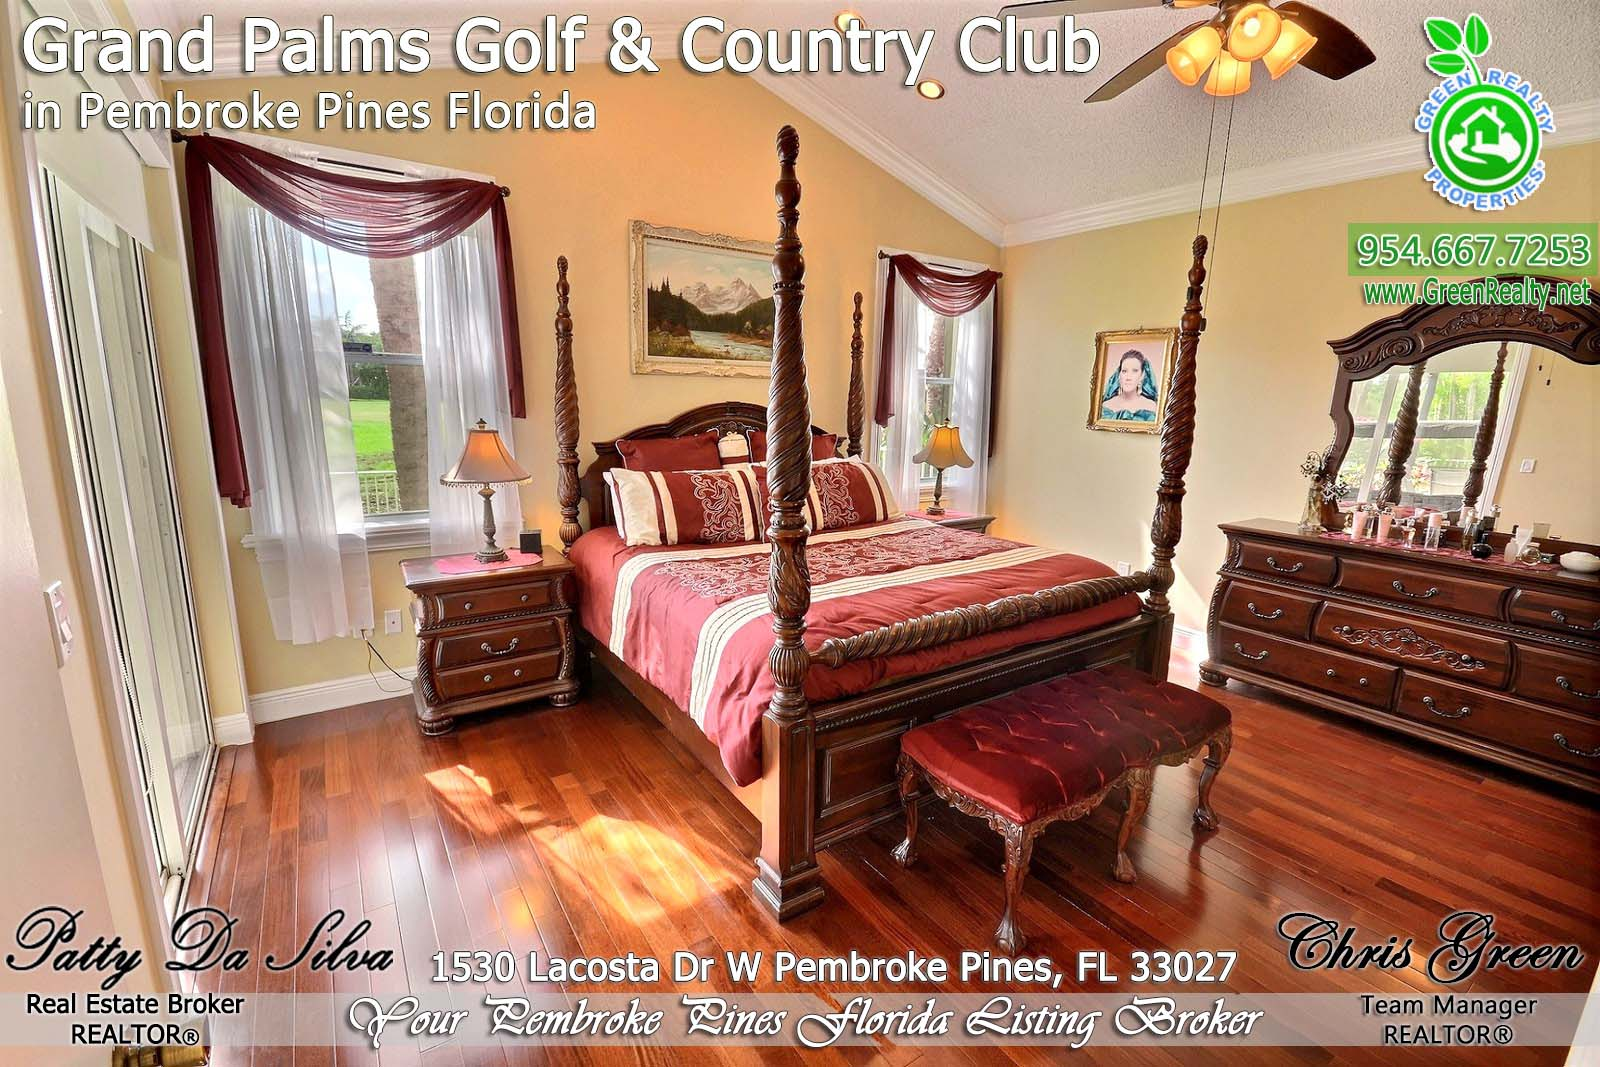 Home in Grand Palms Pembroke Pines